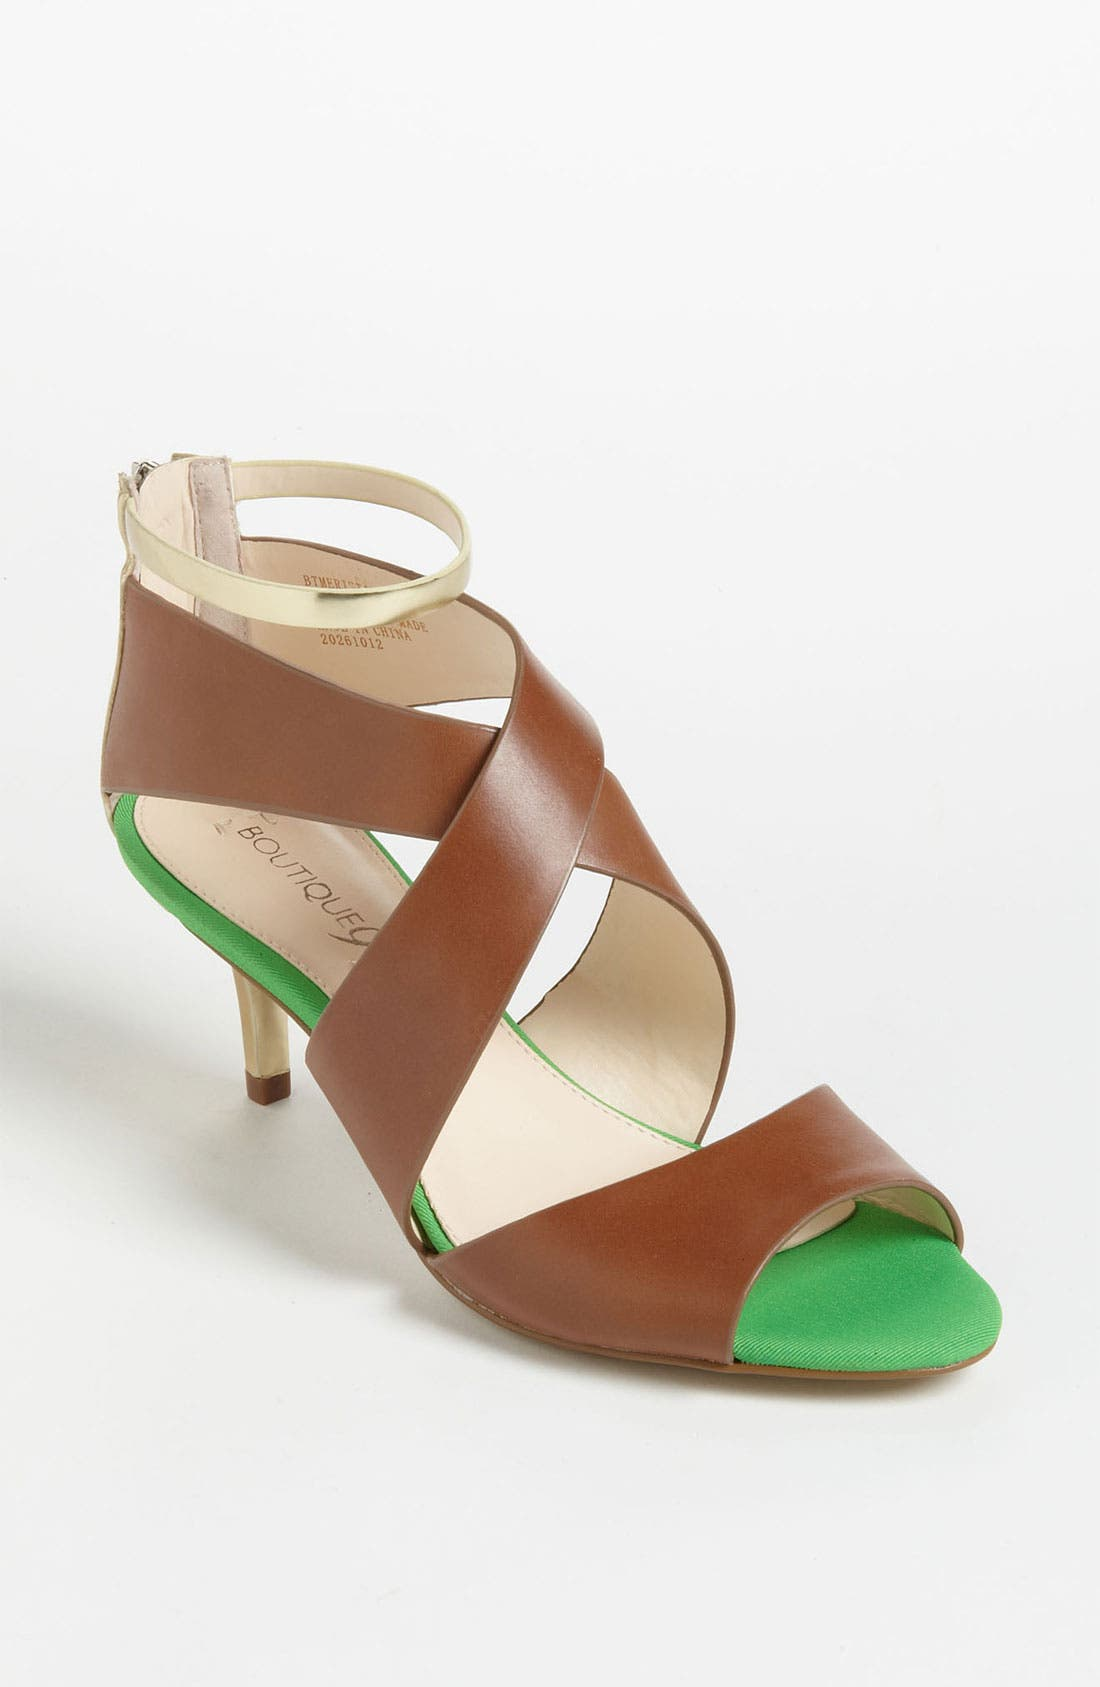 Alternate Image 1 Selected - Boutique 9 'Merista' Sandal